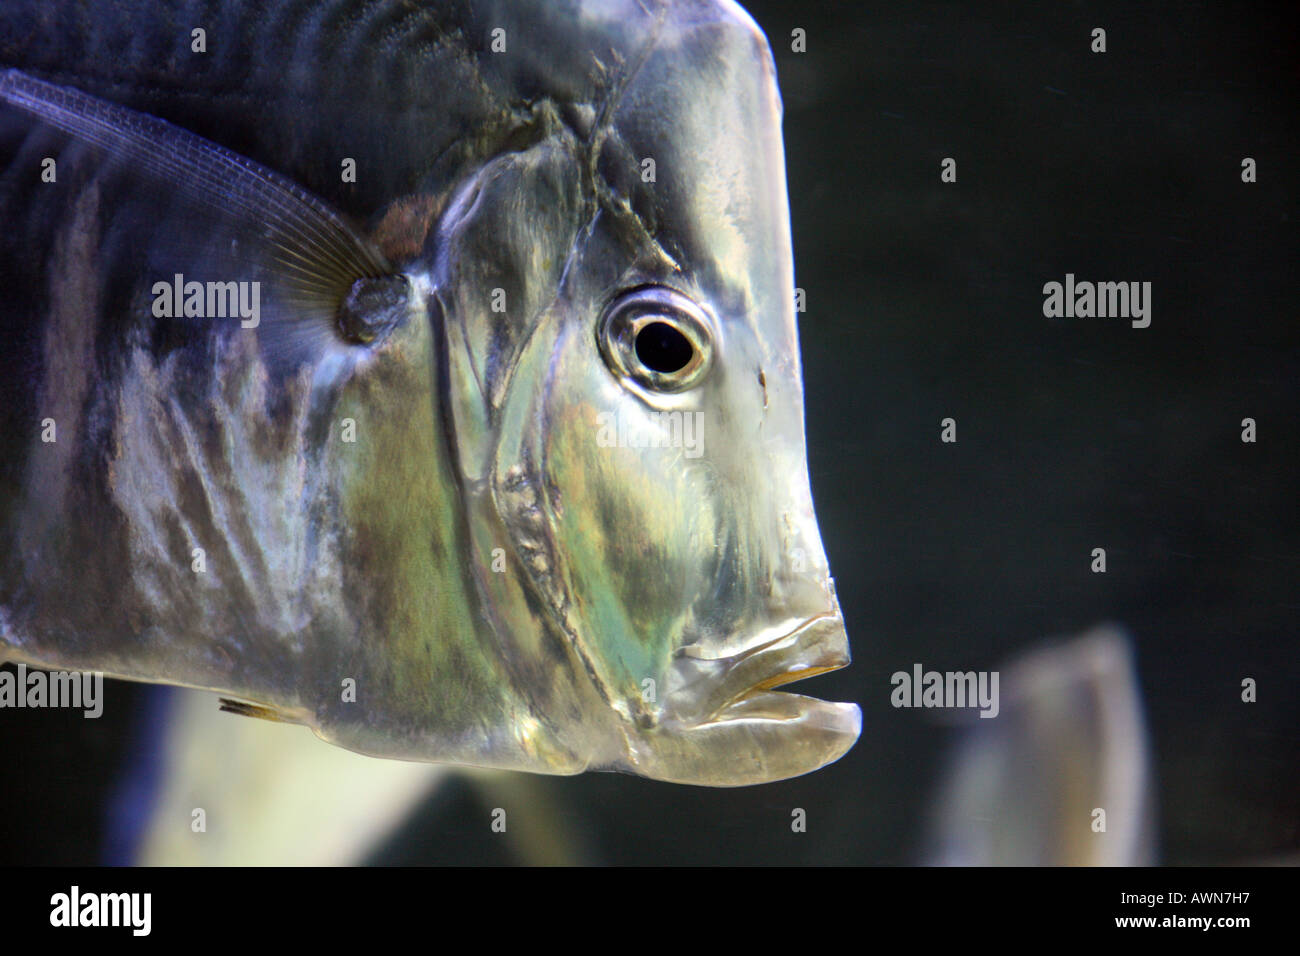 close-up-of-head-of-selene-vomer-gamefish-AWN7H7.jpg